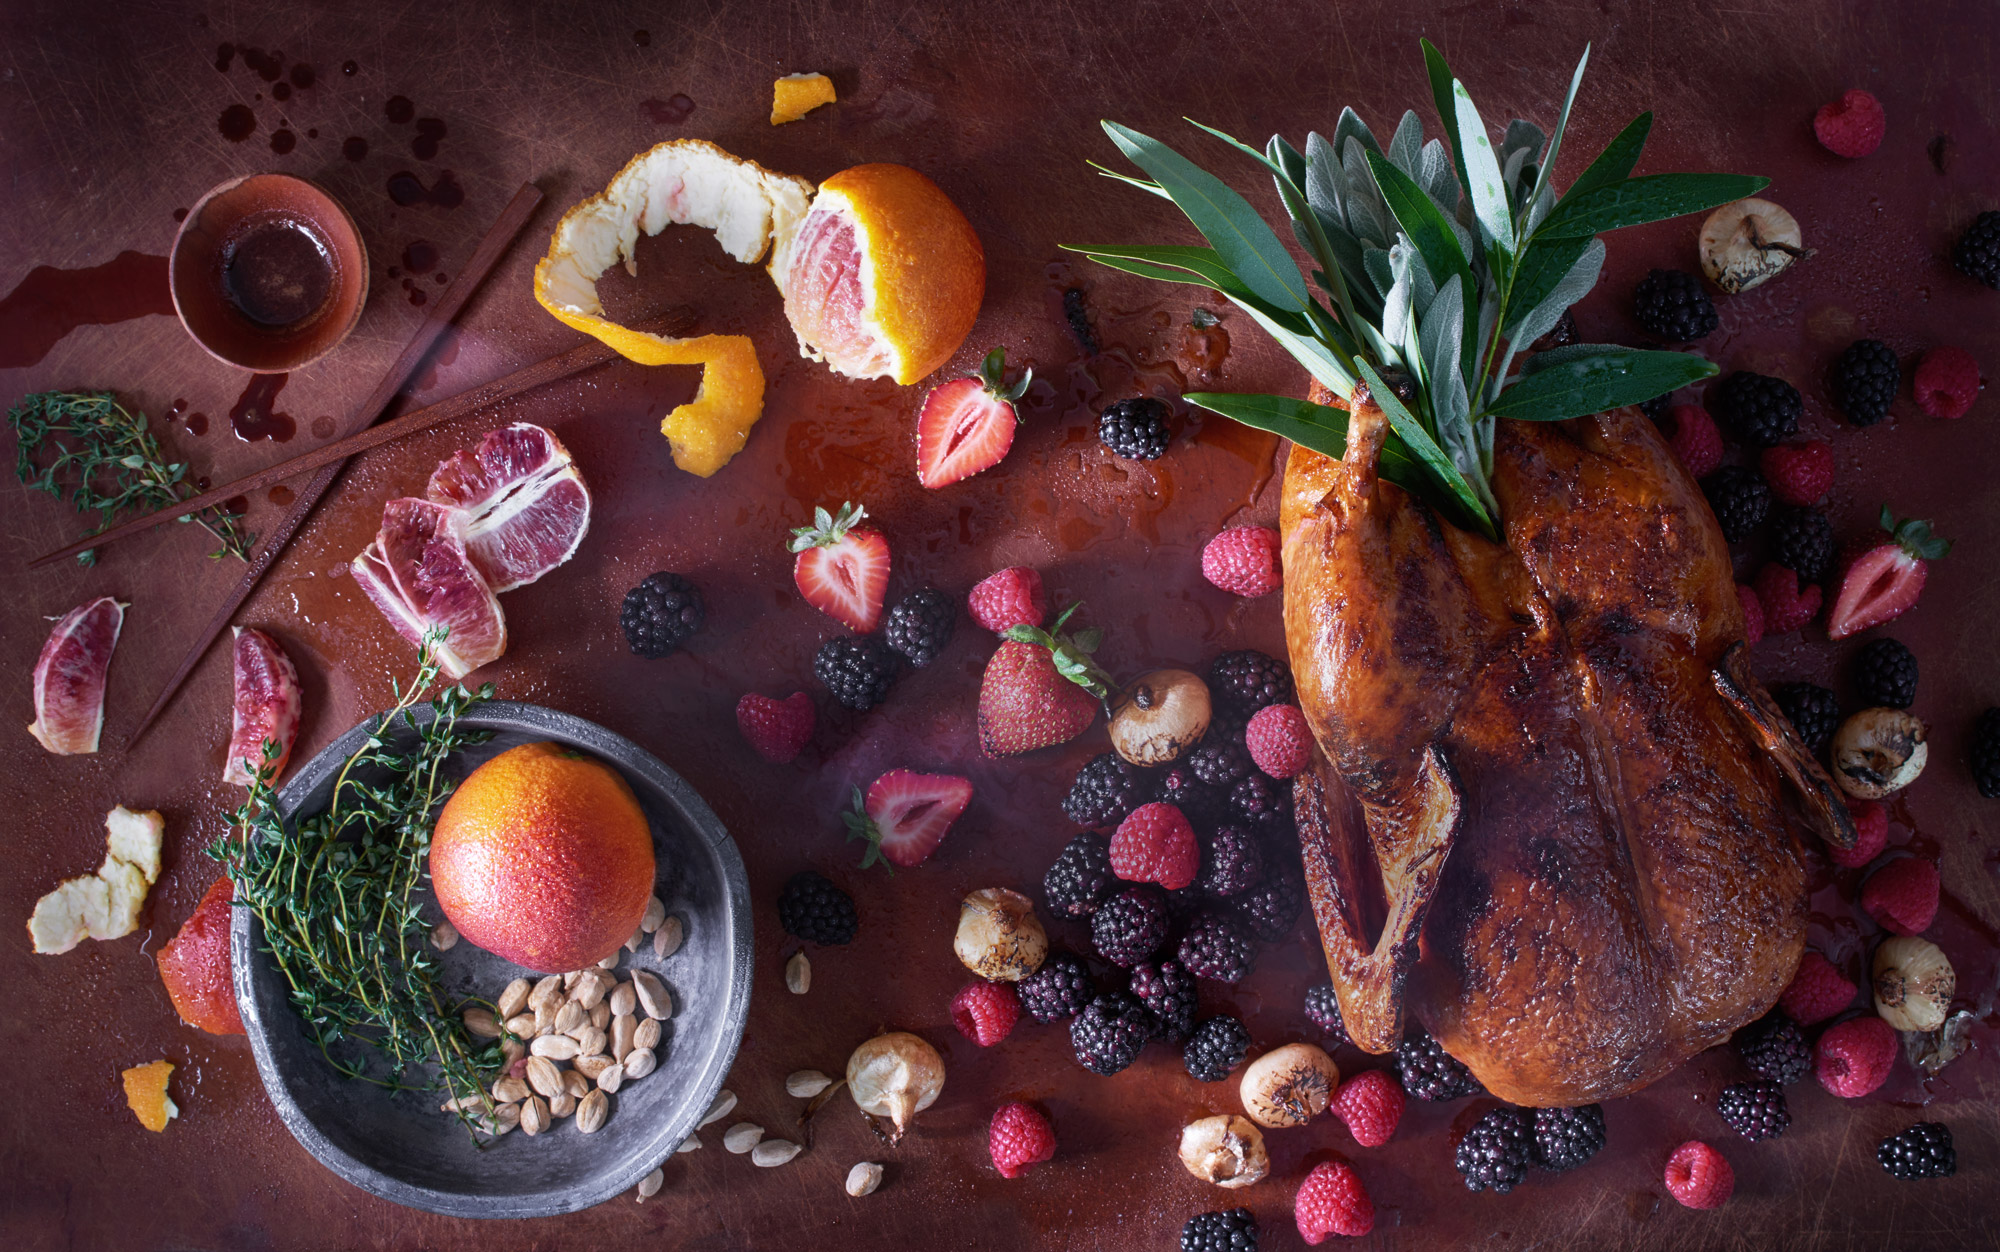 How To Add Dimension To Food Photography Westcott University